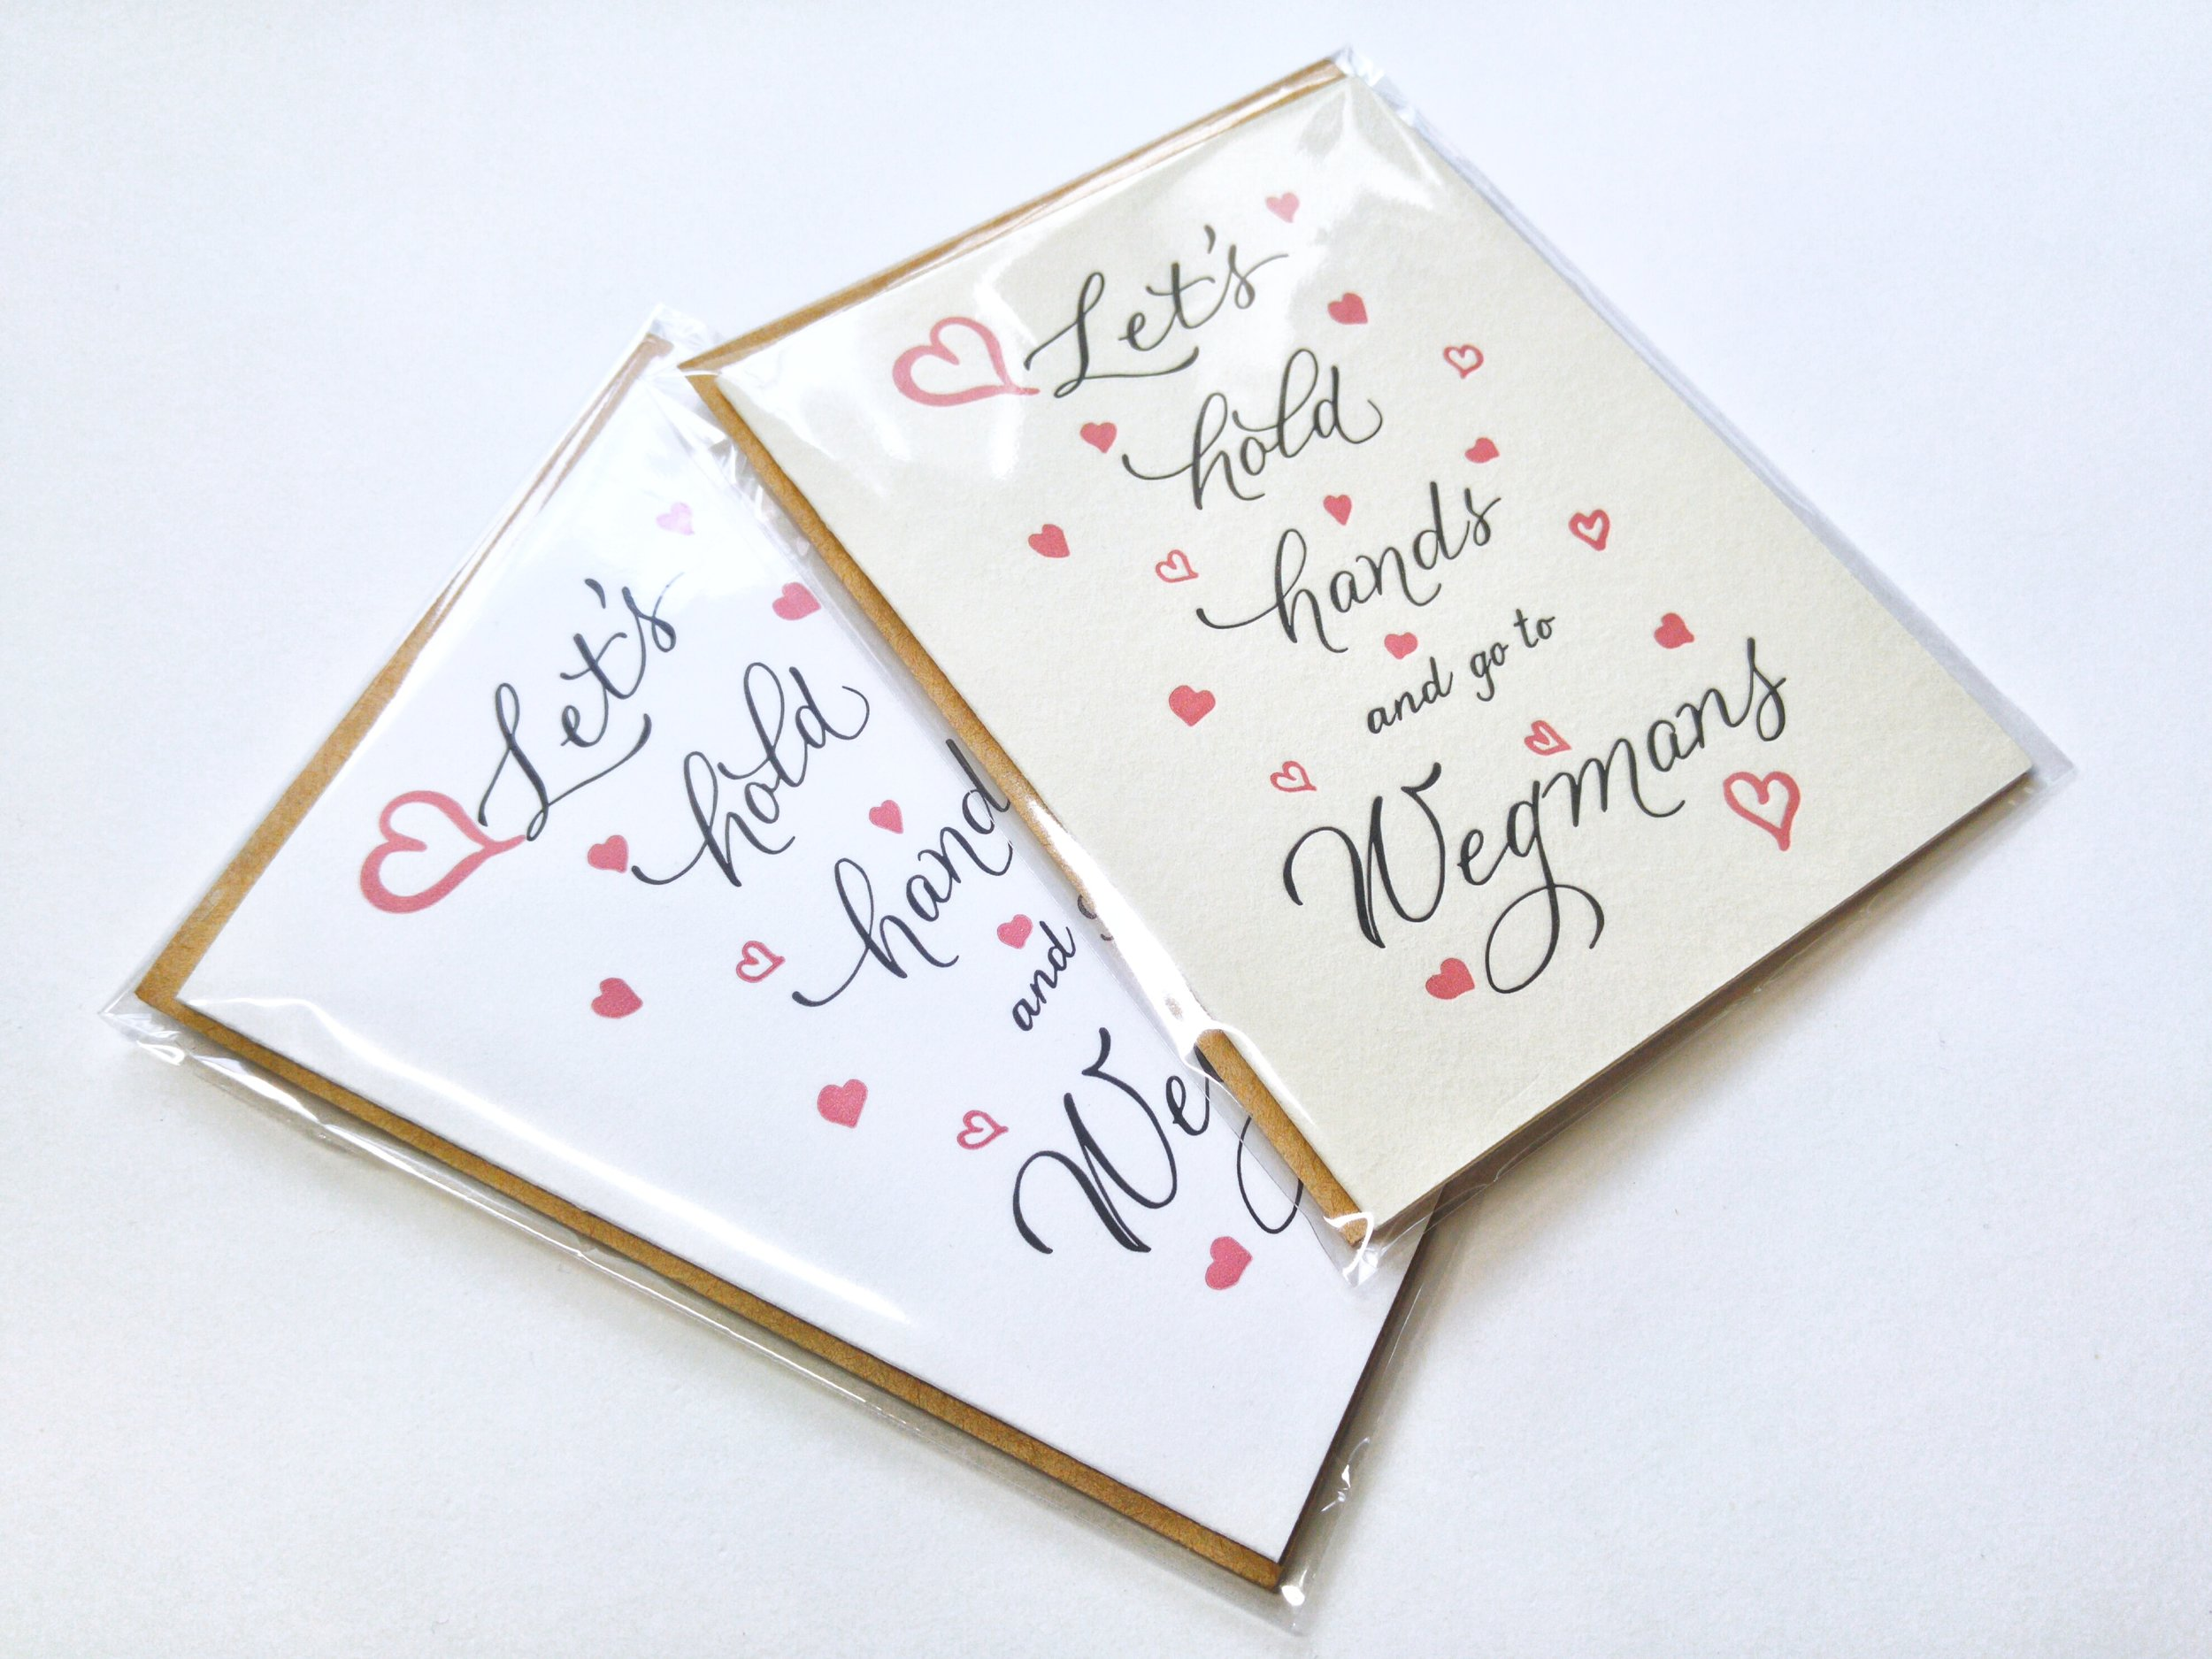 Let's Hold Hands and go to Wegmans letterpress greeting cards.